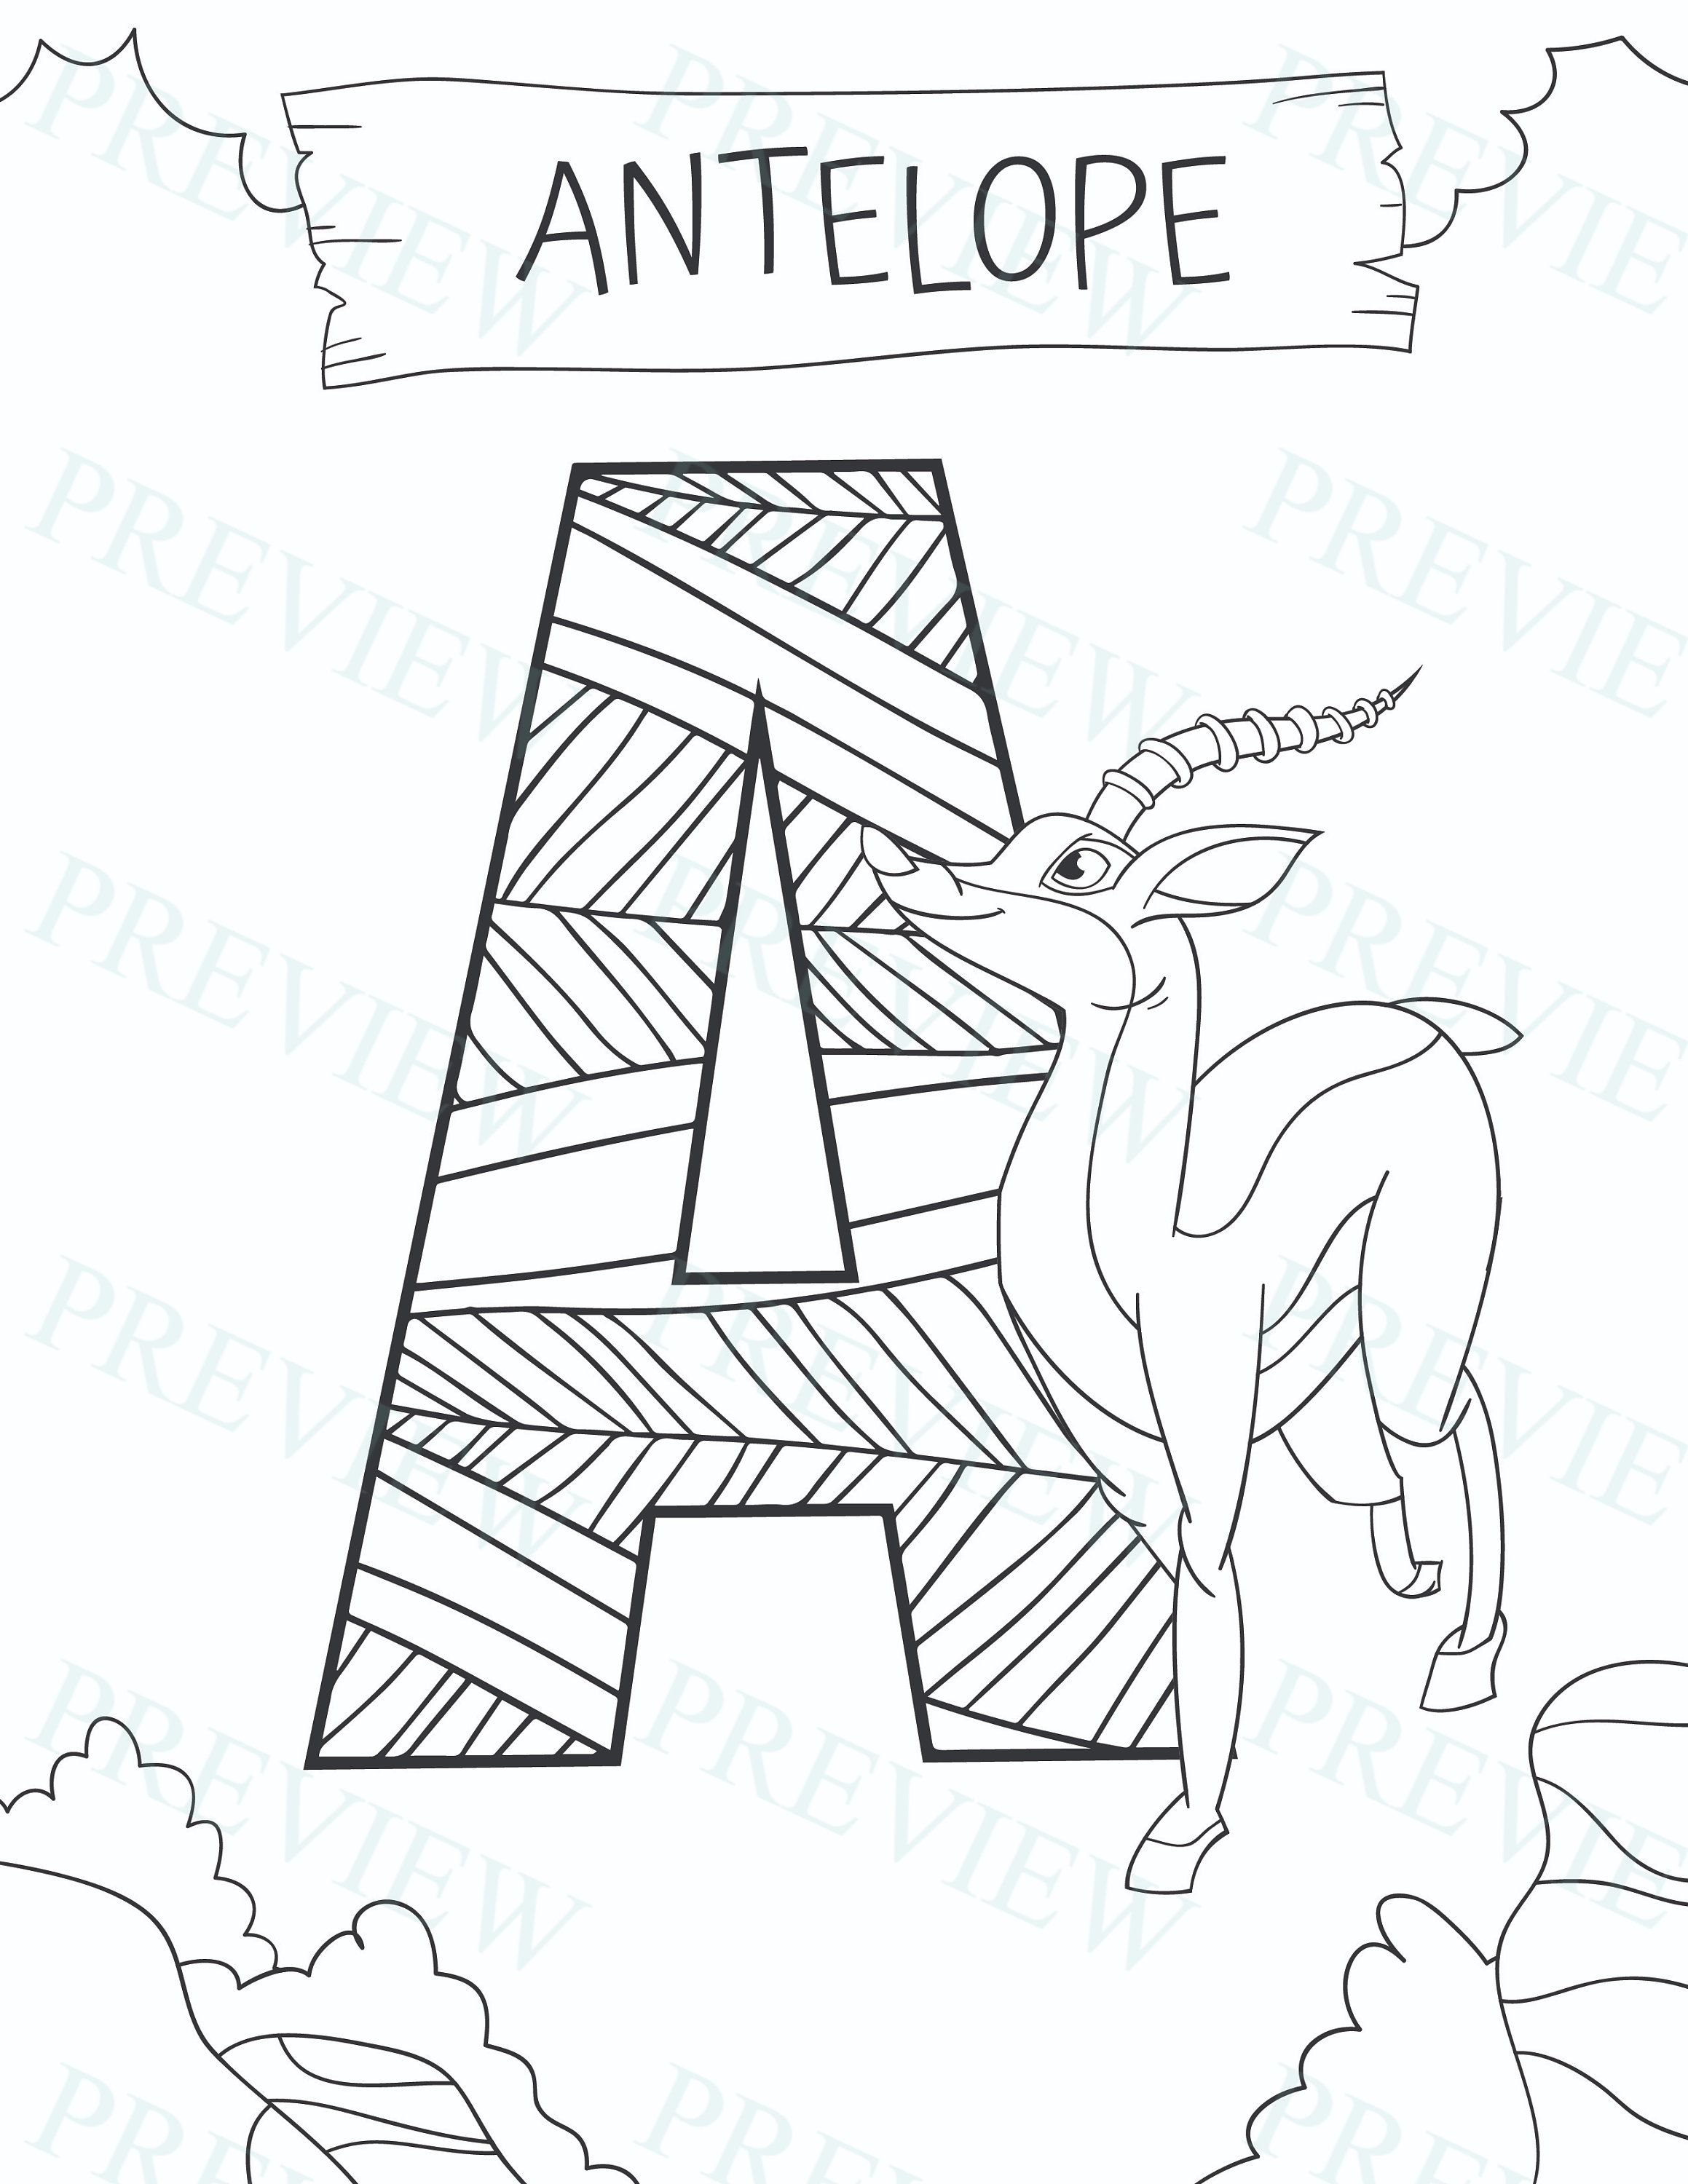 26 Animal Coloring Pages Alphabet Sheets Pdf Wildlife Letters Etsy Animal Coloring Pages Coloring Pages Letters